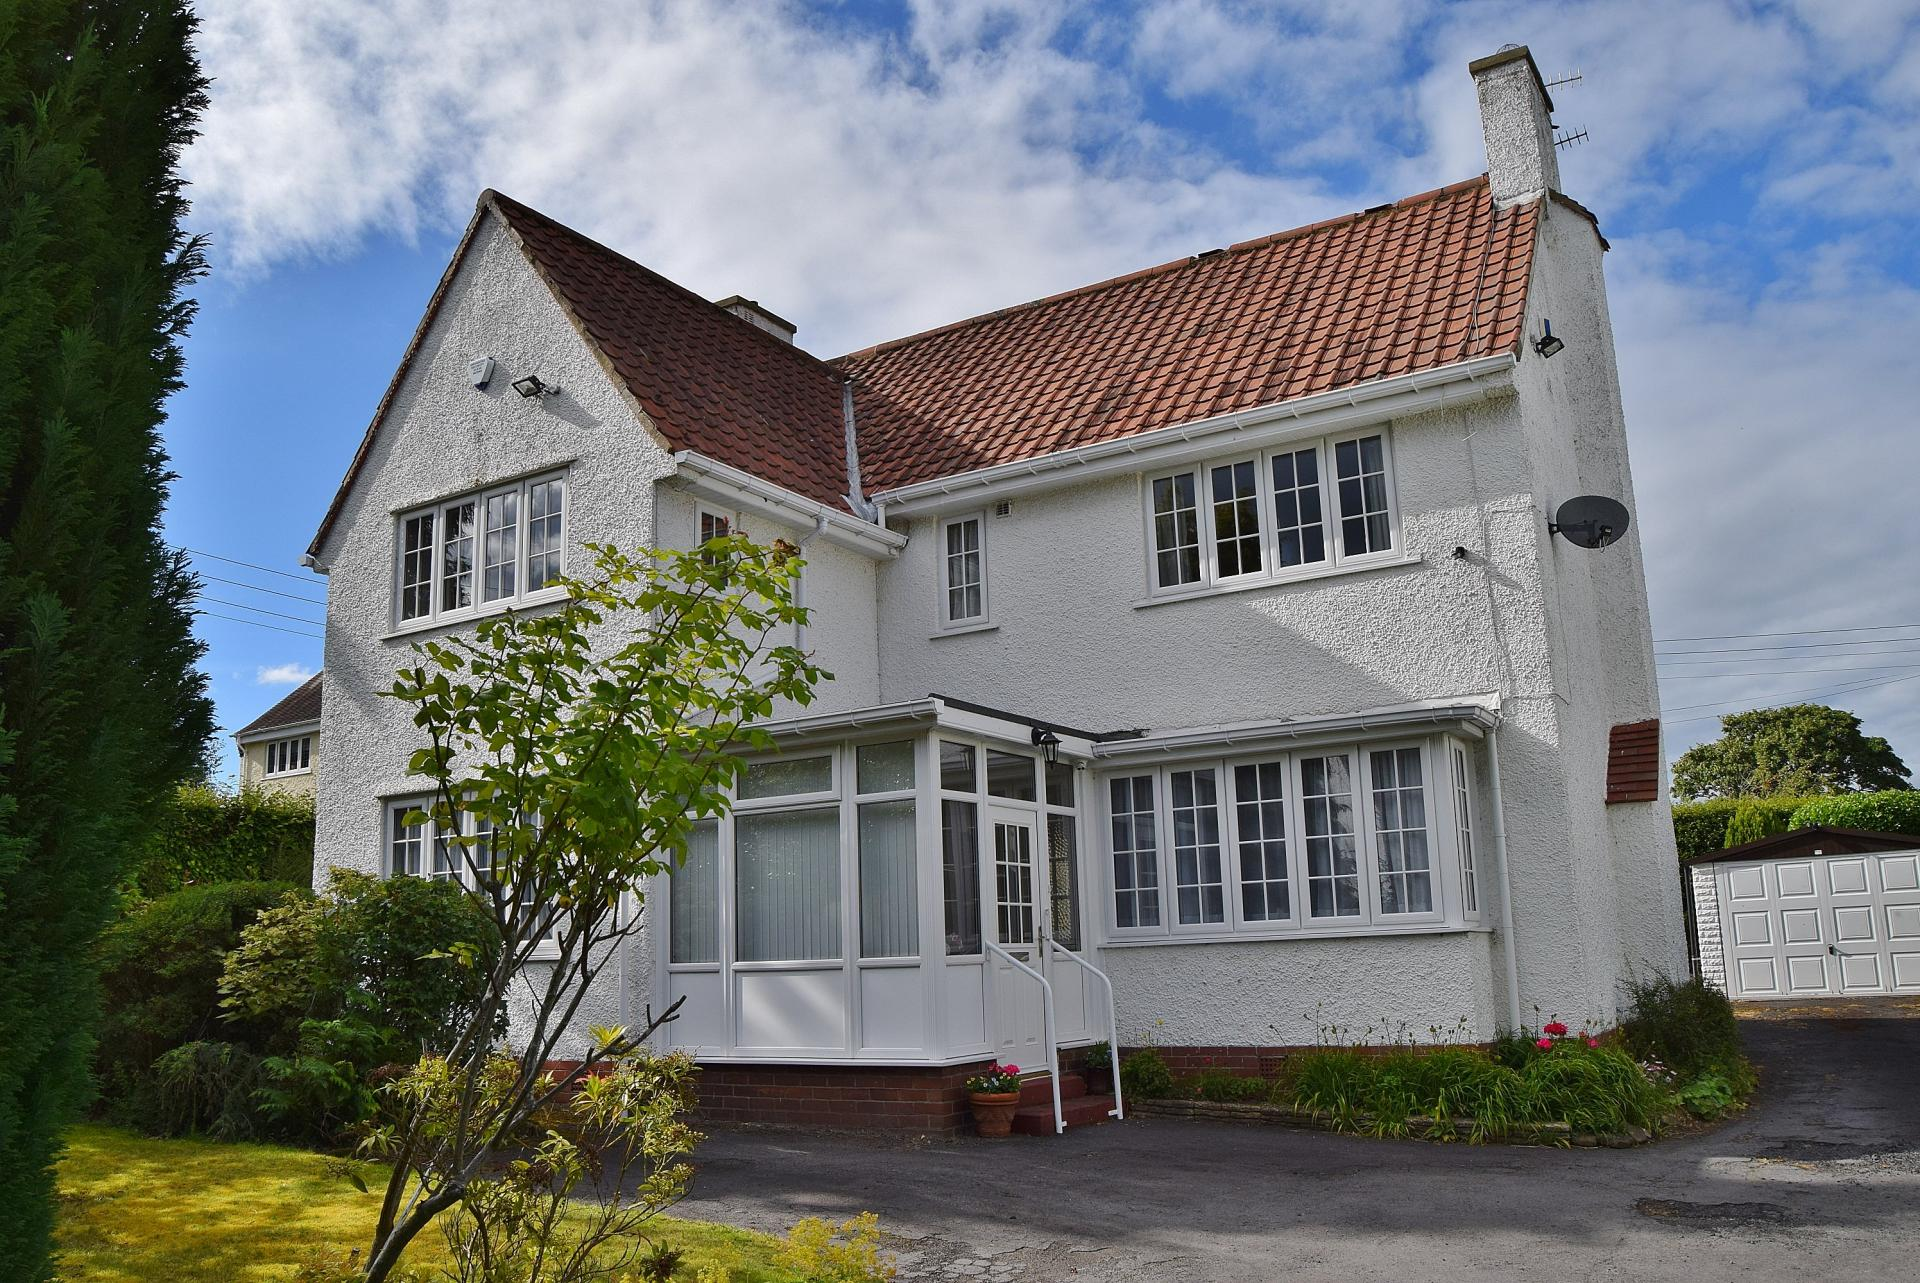 4 Bedrooms Detached House for sale in Causey Way, Hexham